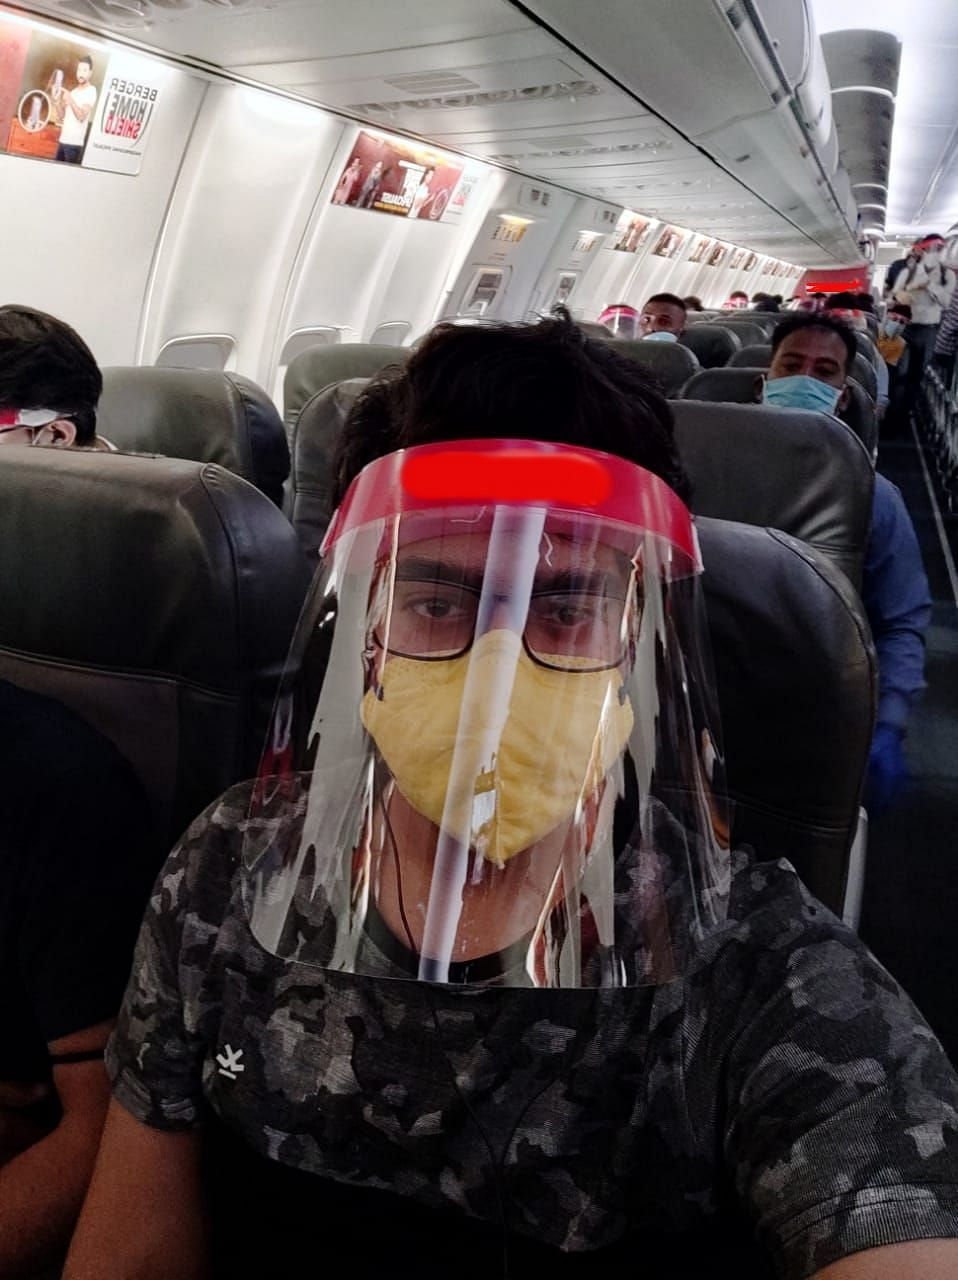 The airline gave us a surgical mask, face shield and a few sanitizer sachets.